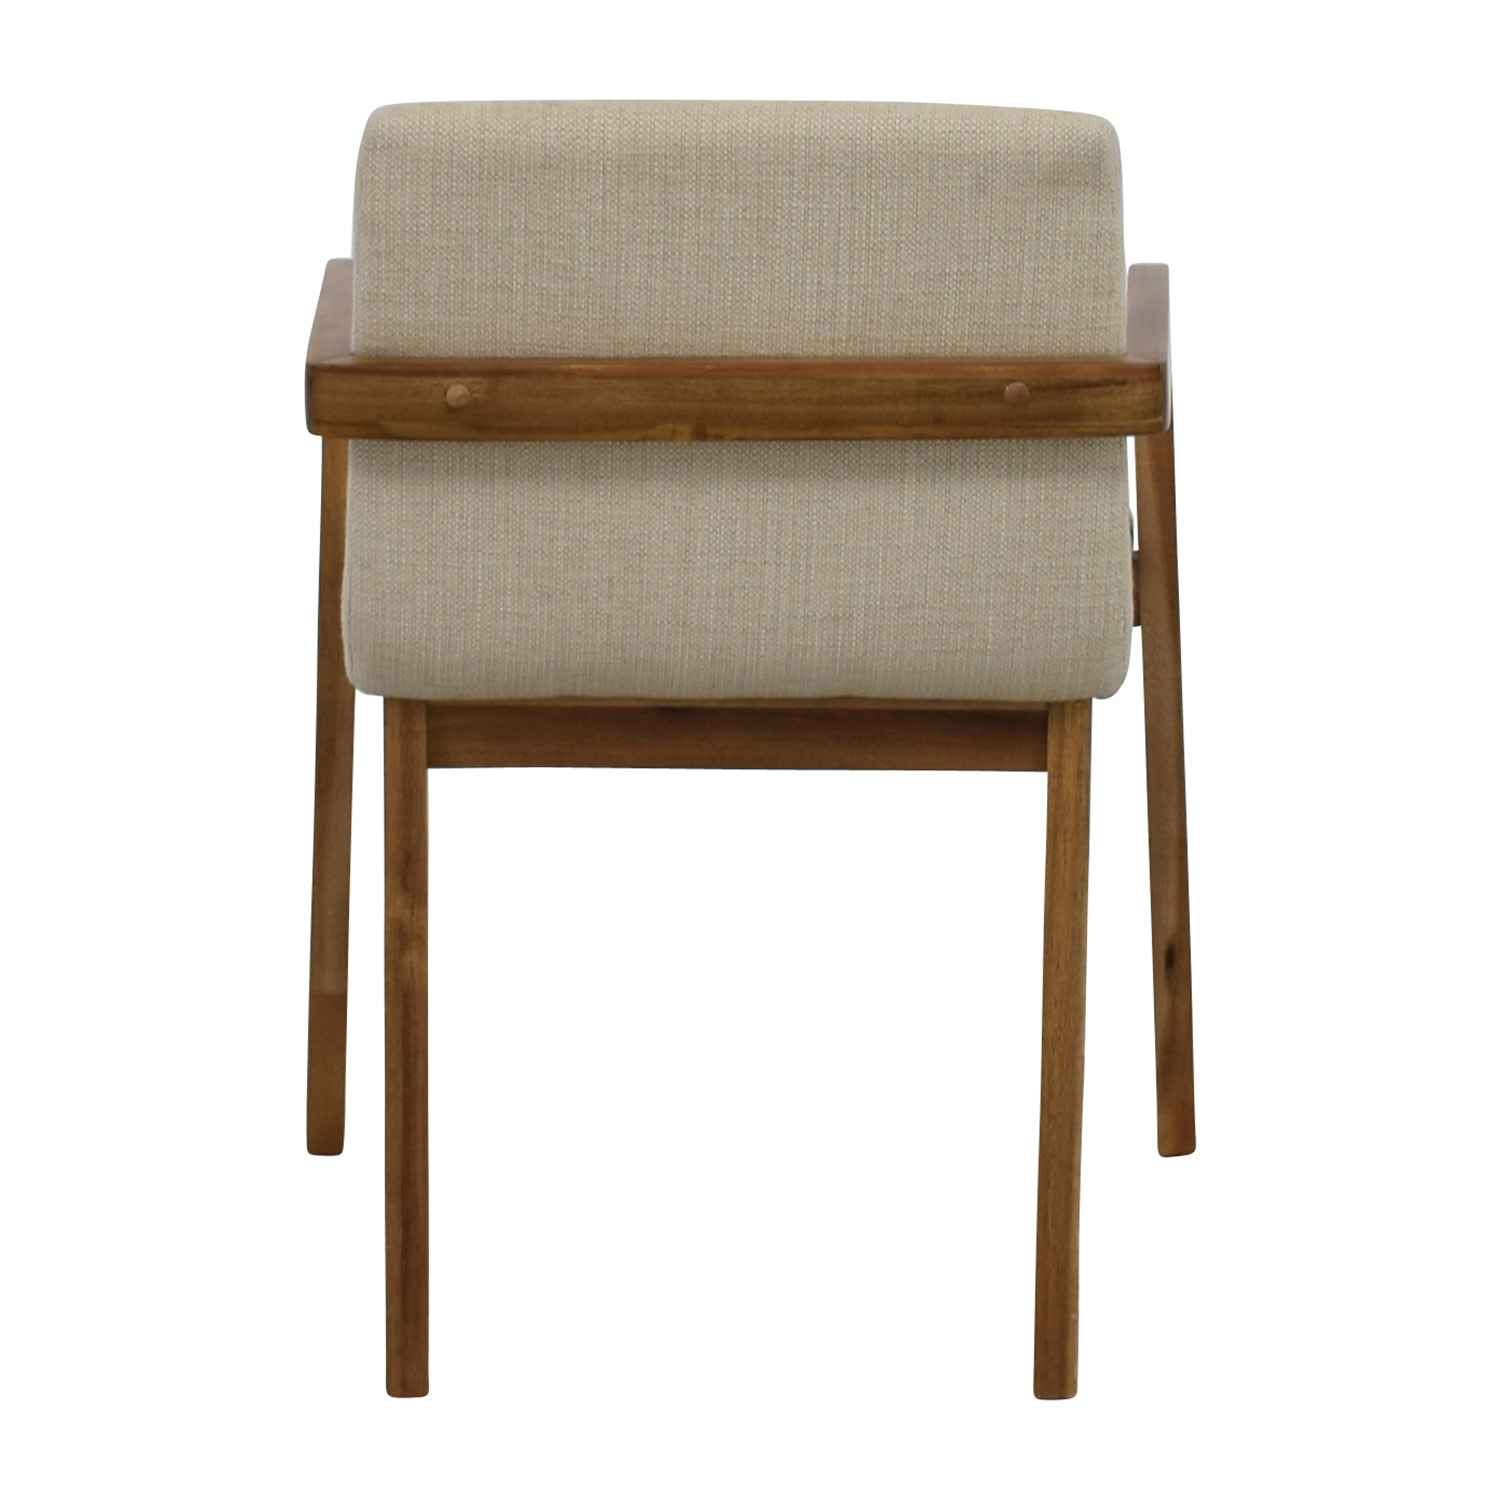 CB2 CB2 Natural Mid-Century Accent Chair nyc